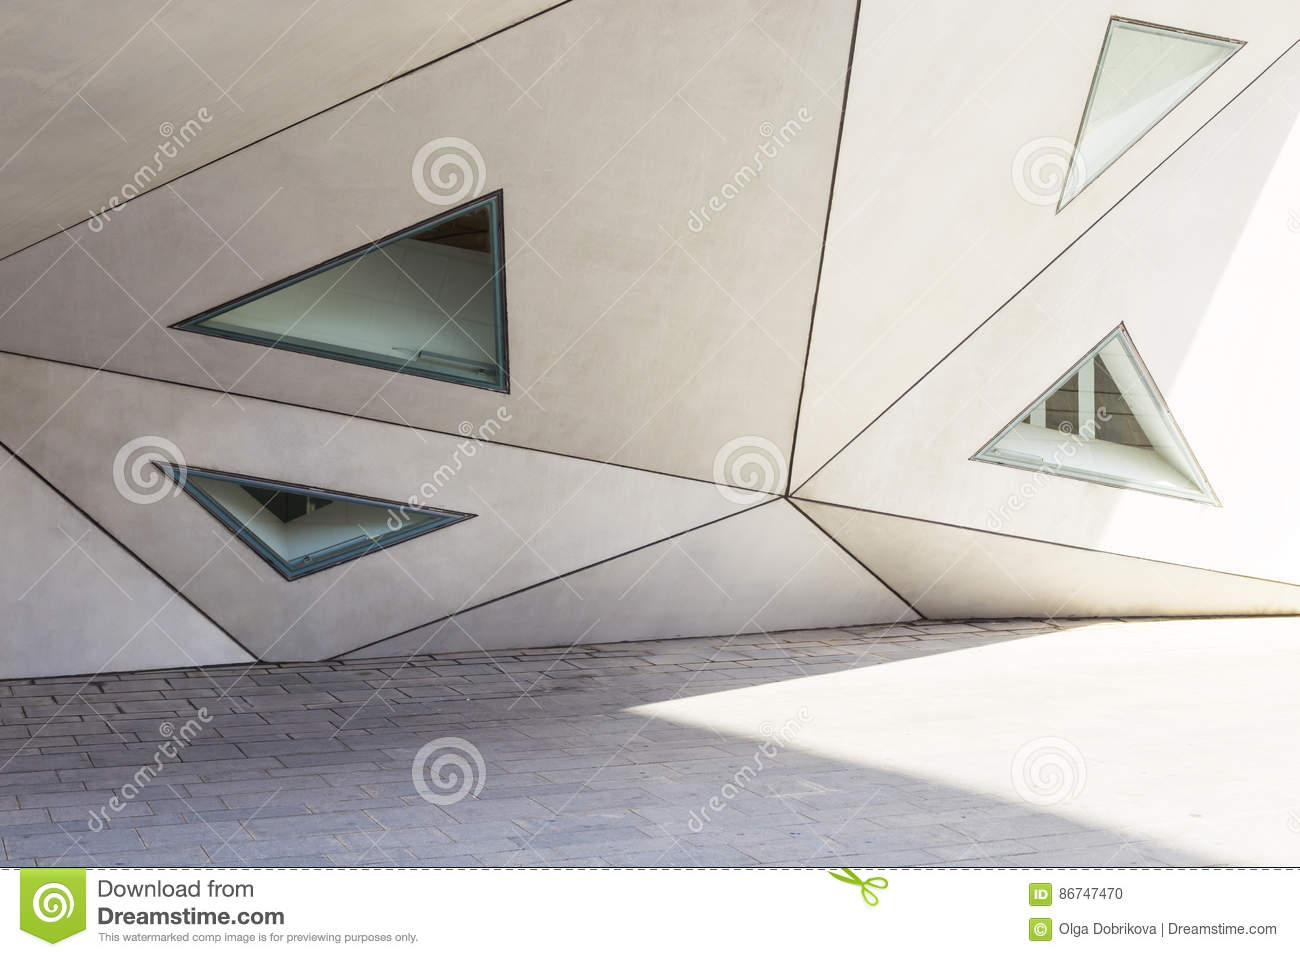 Geometry in architecture, part of the facade of the building, tr